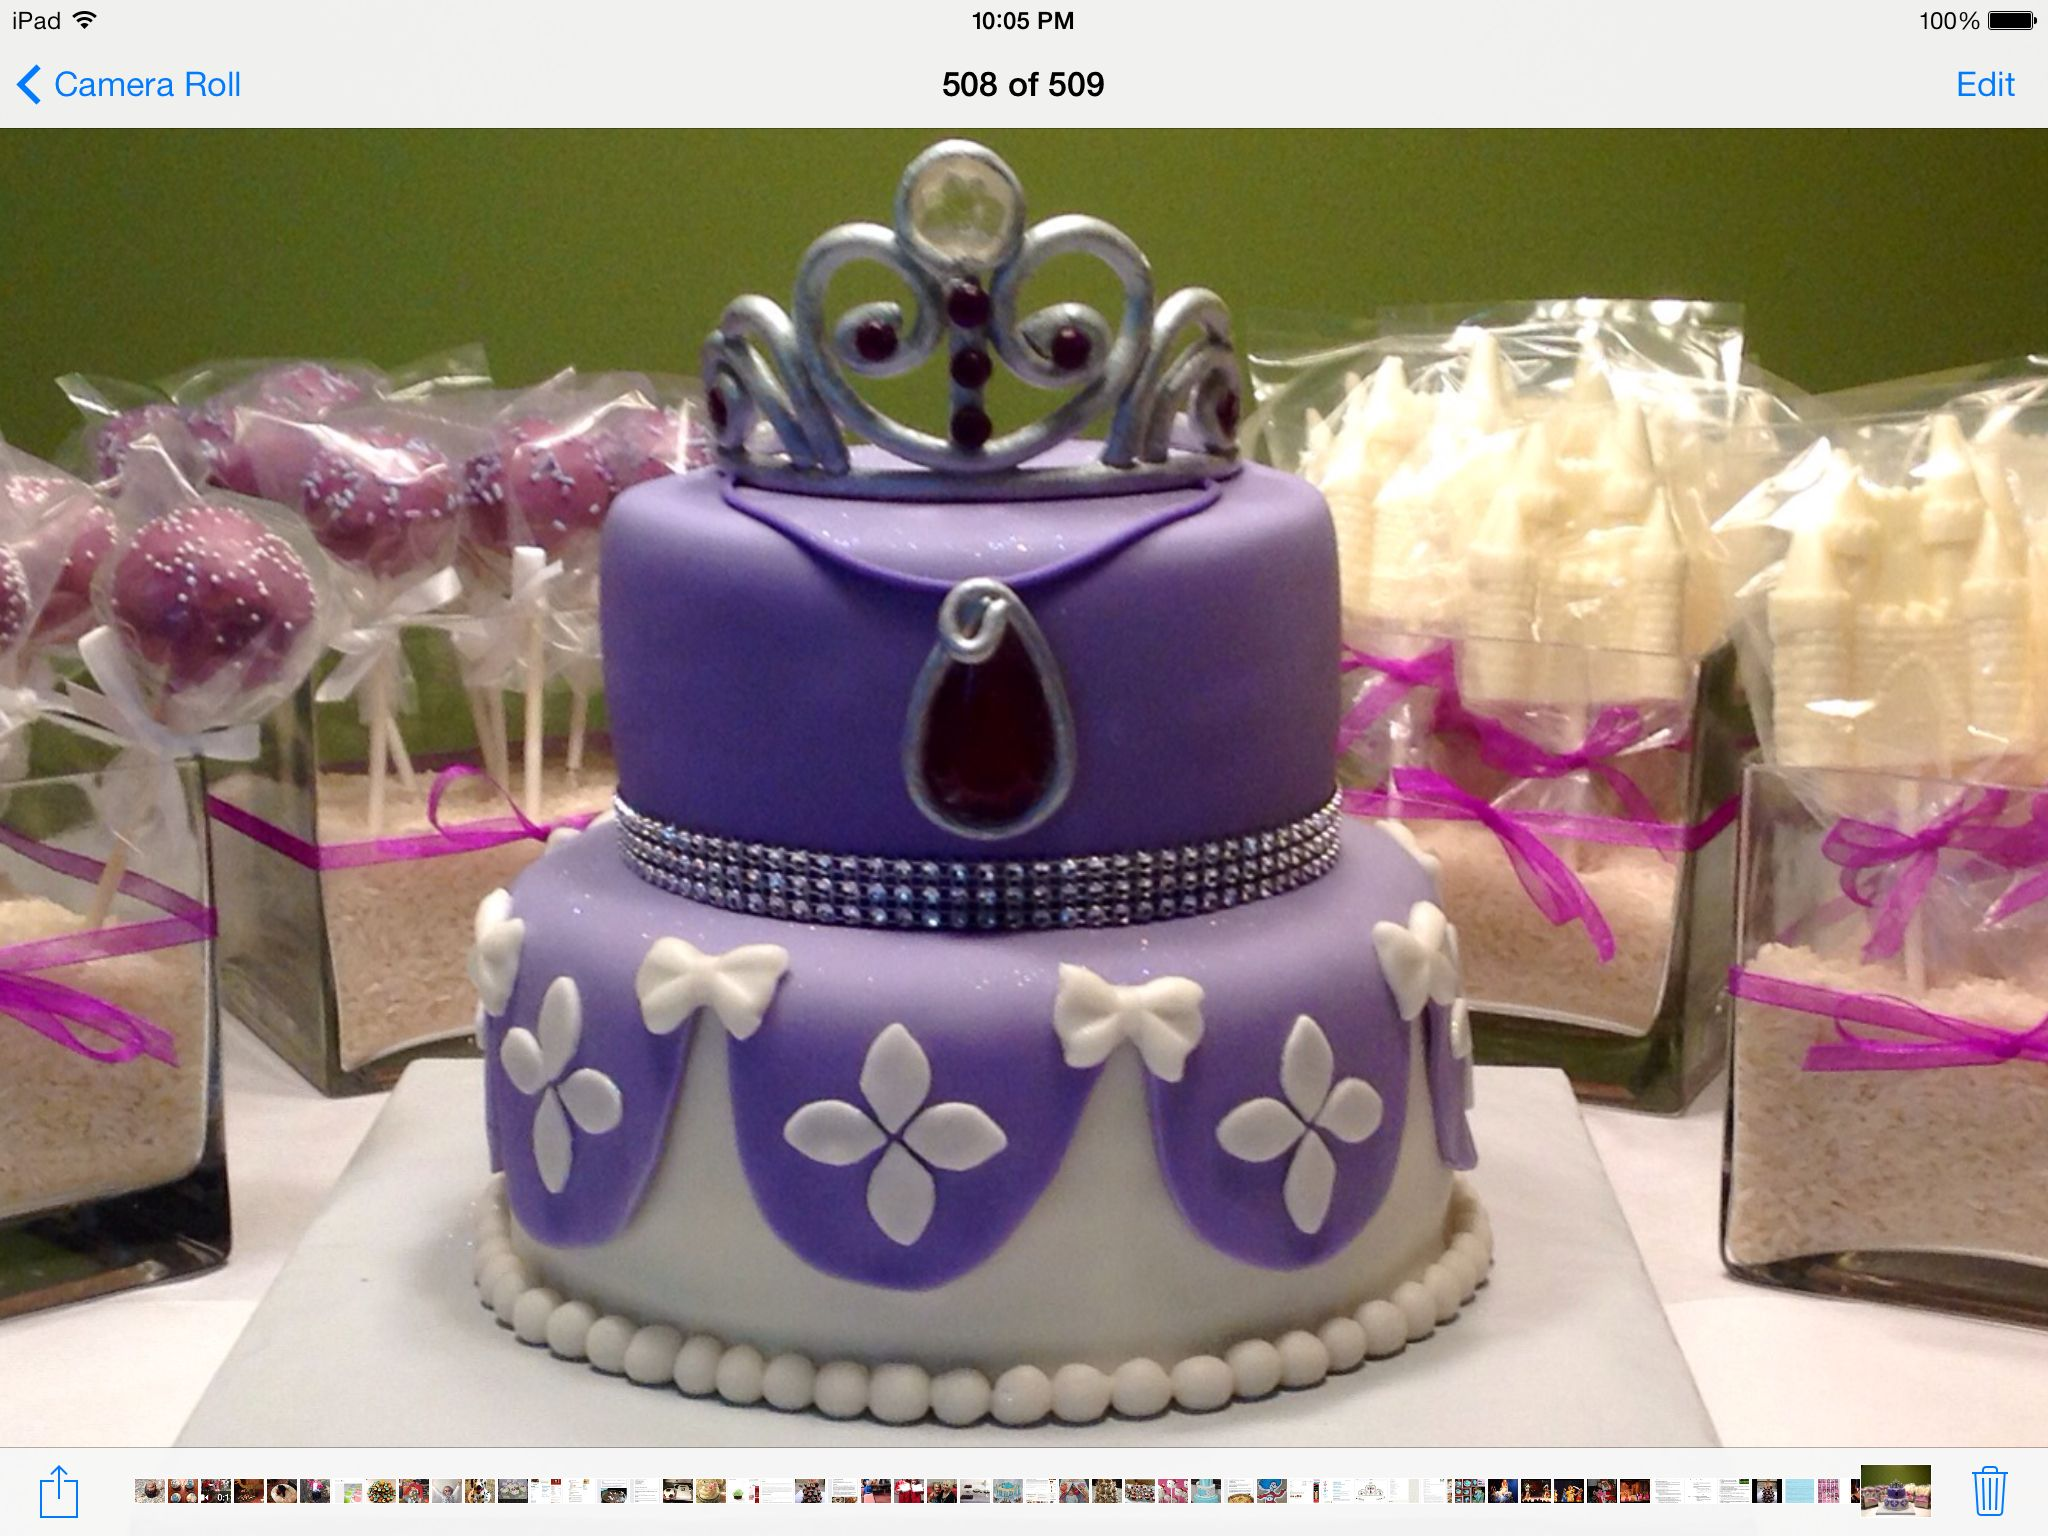 Pictures Of Princess Sofia Cake : Princess Sofia Cake. Cakes Pinterest Princess sofia ...